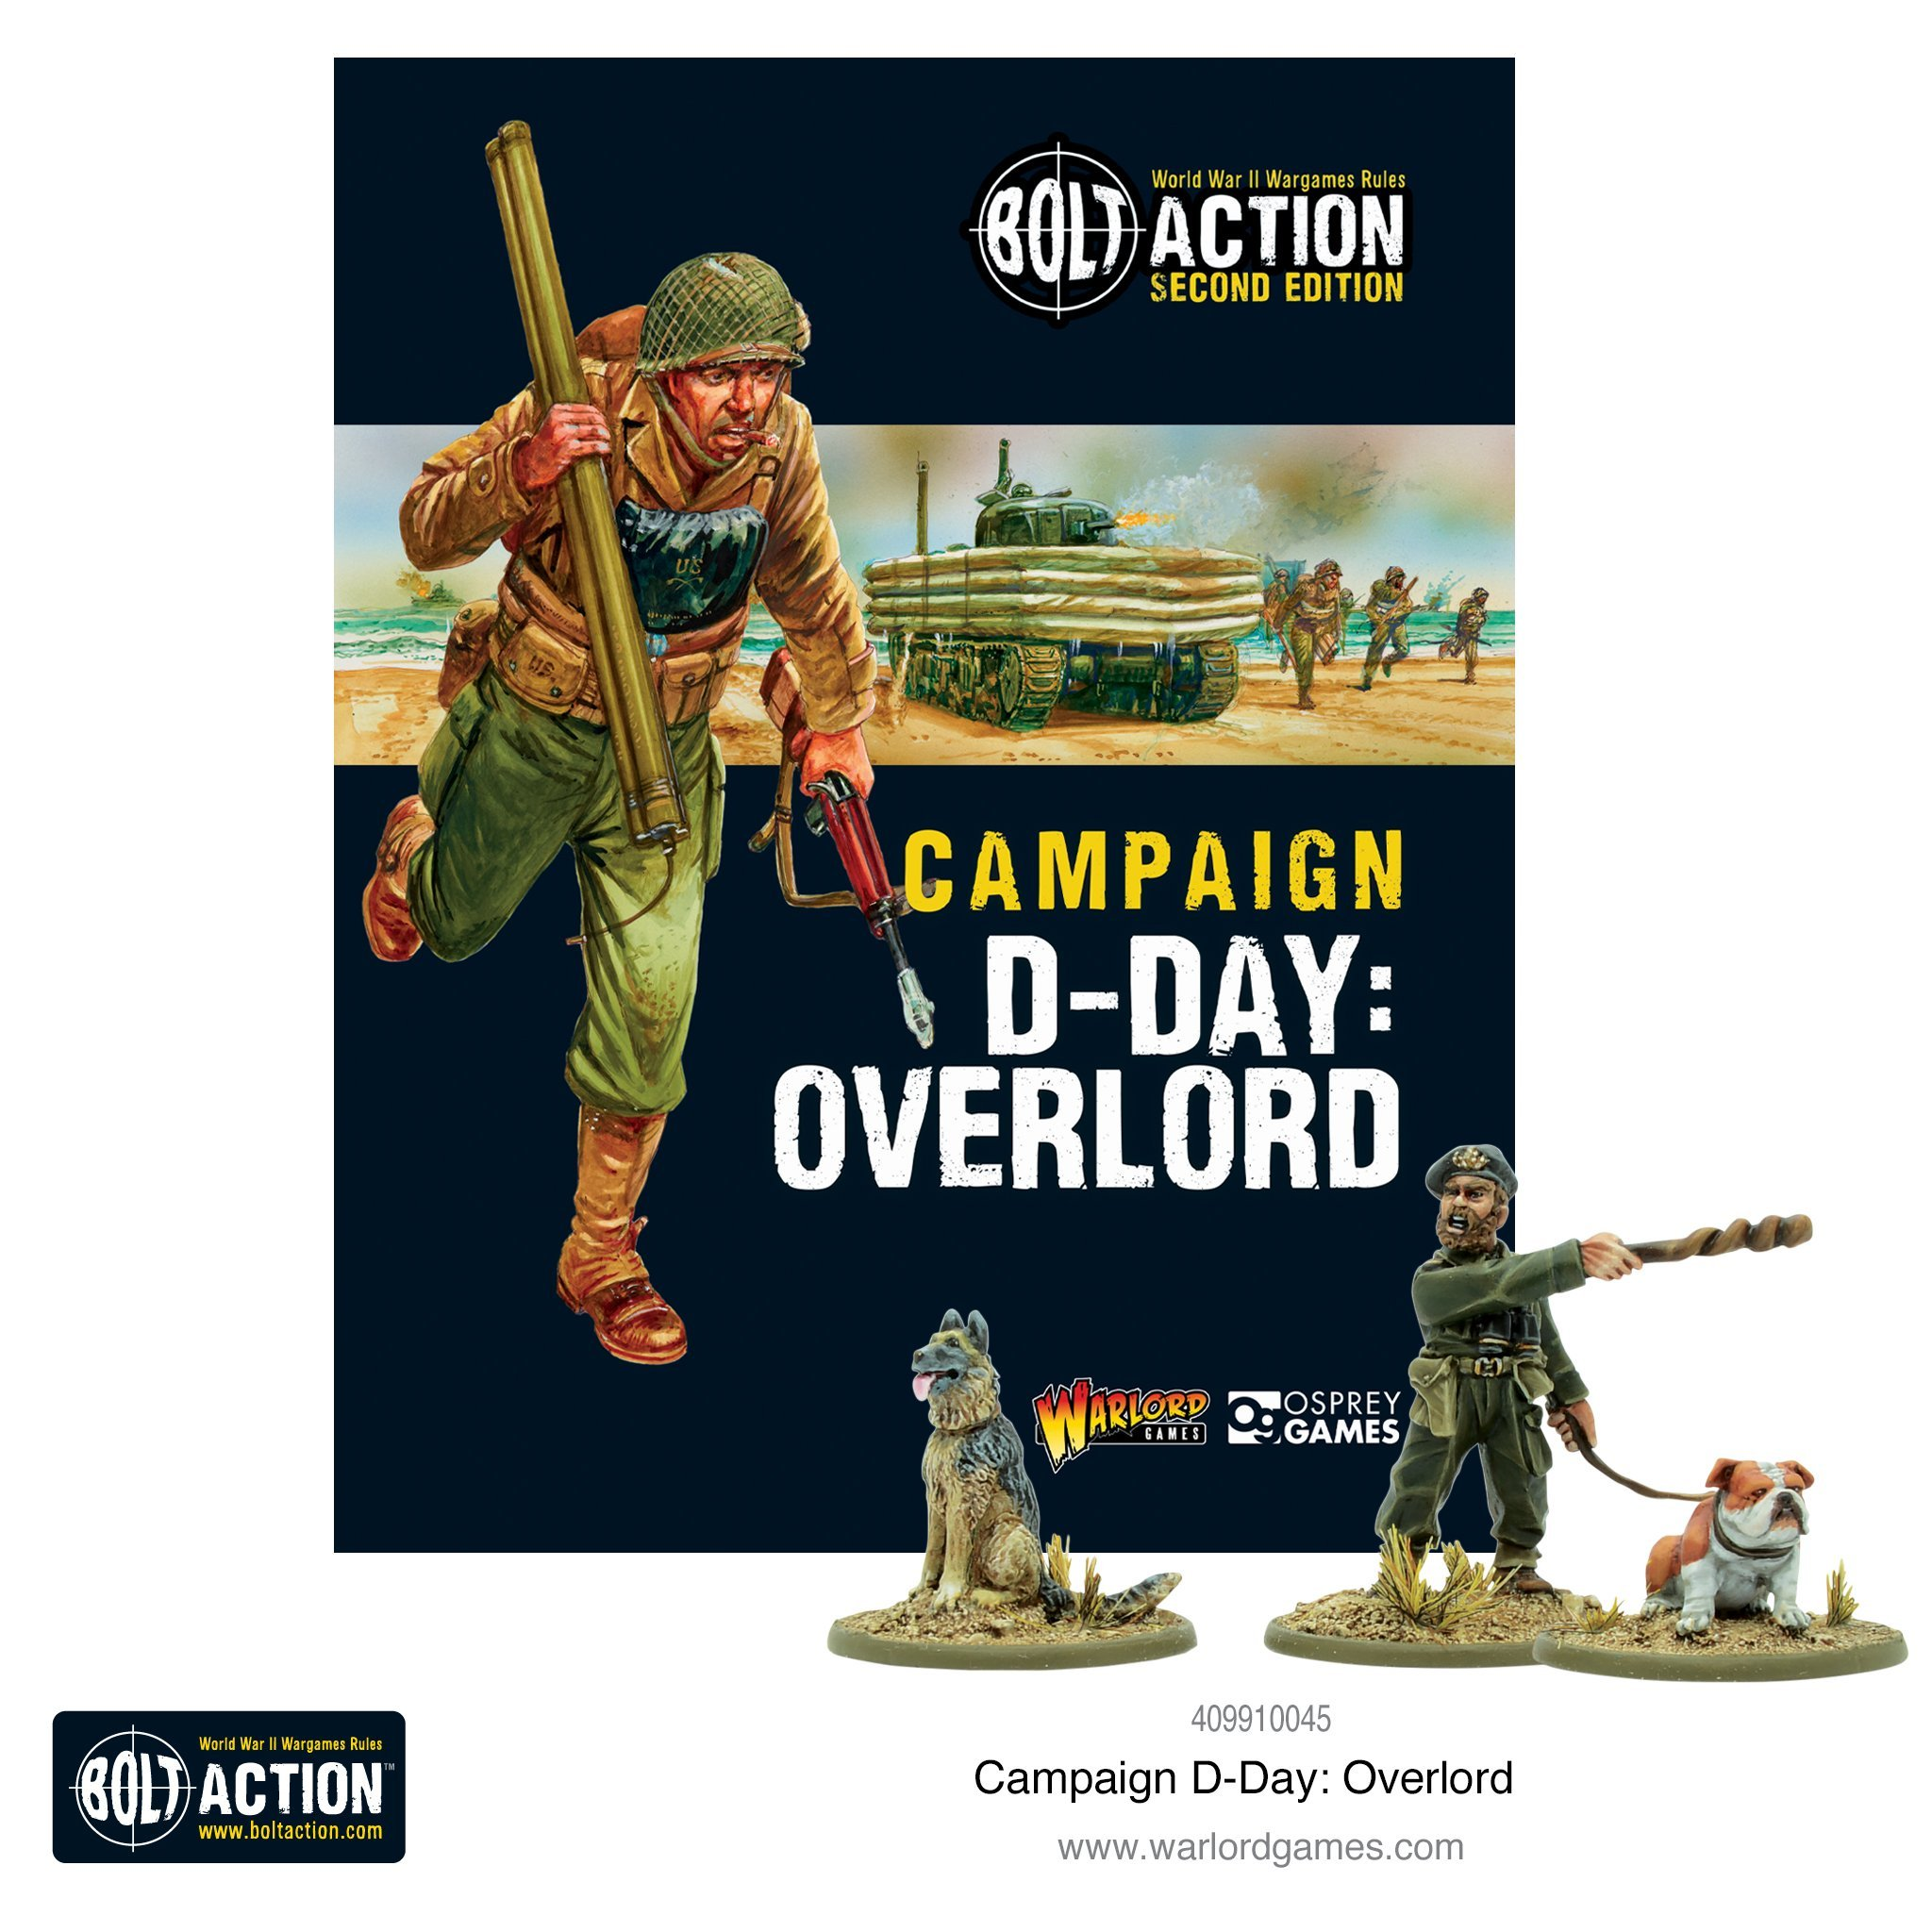 Bolt Action (2nd Edition): Campaign Overlord; D-Day book